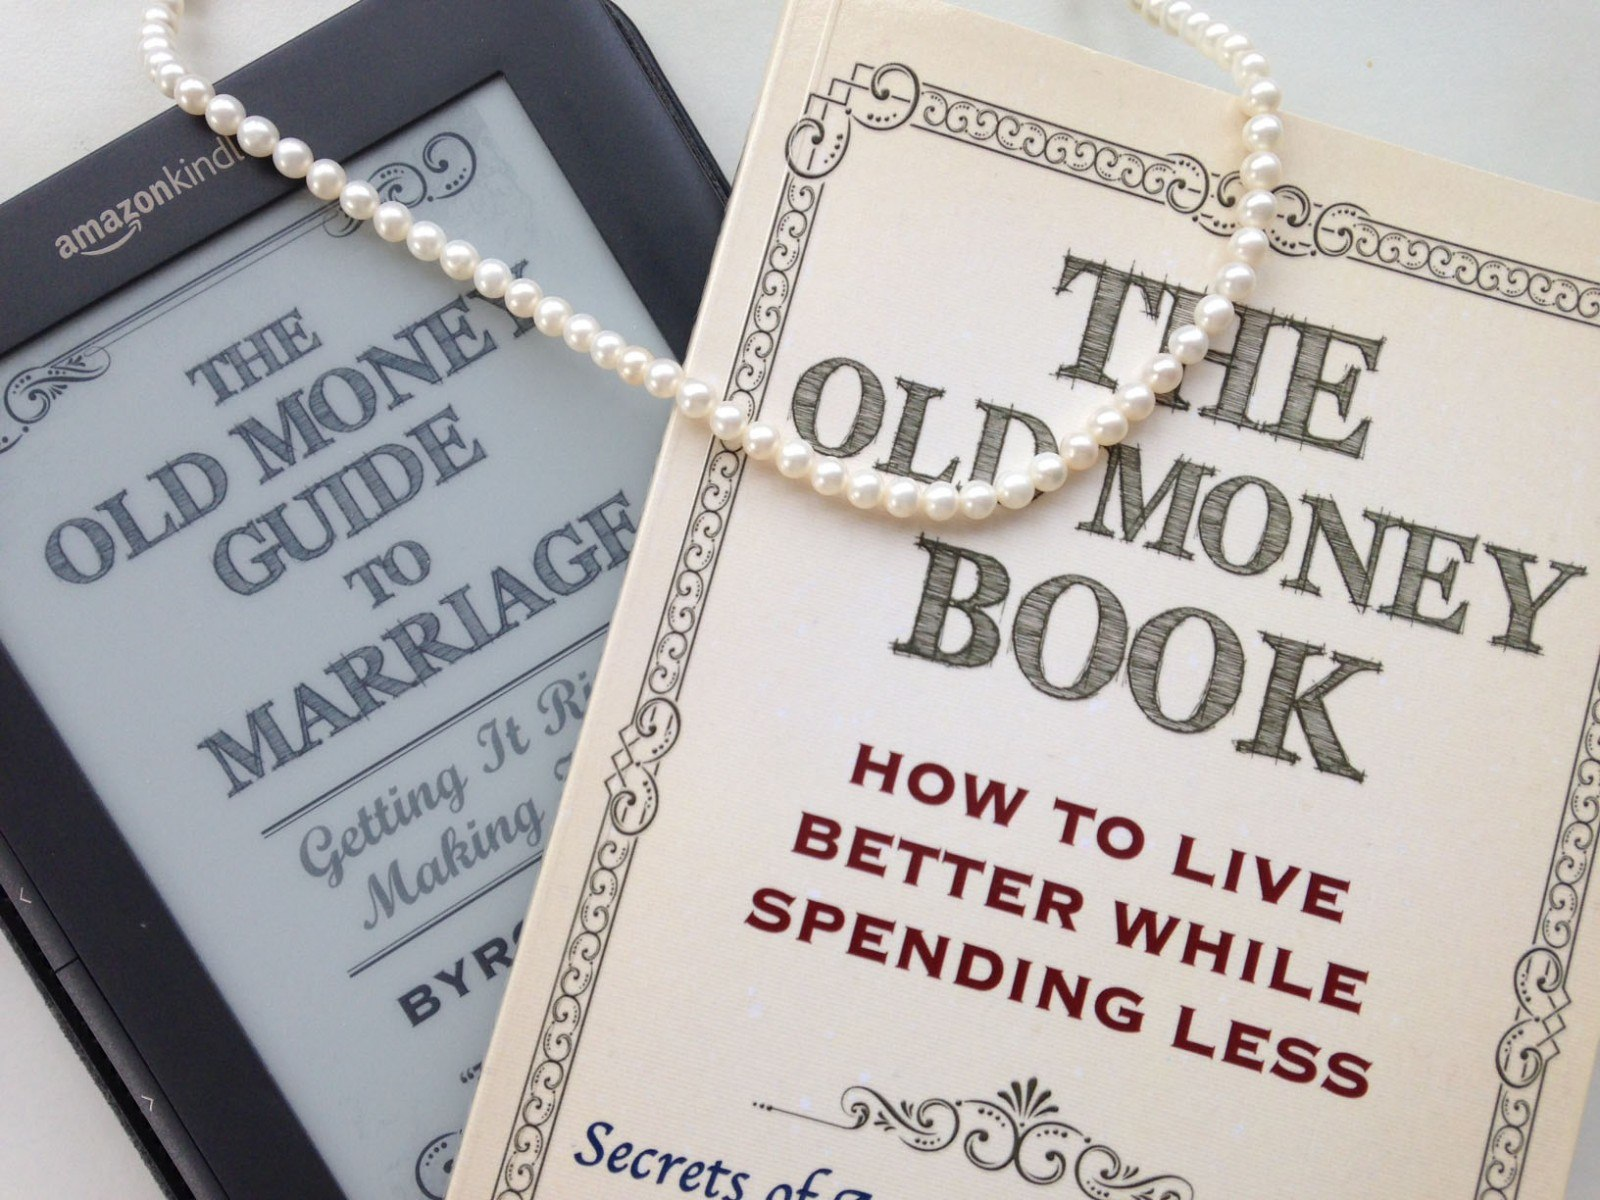 the-old-money-book.jpg